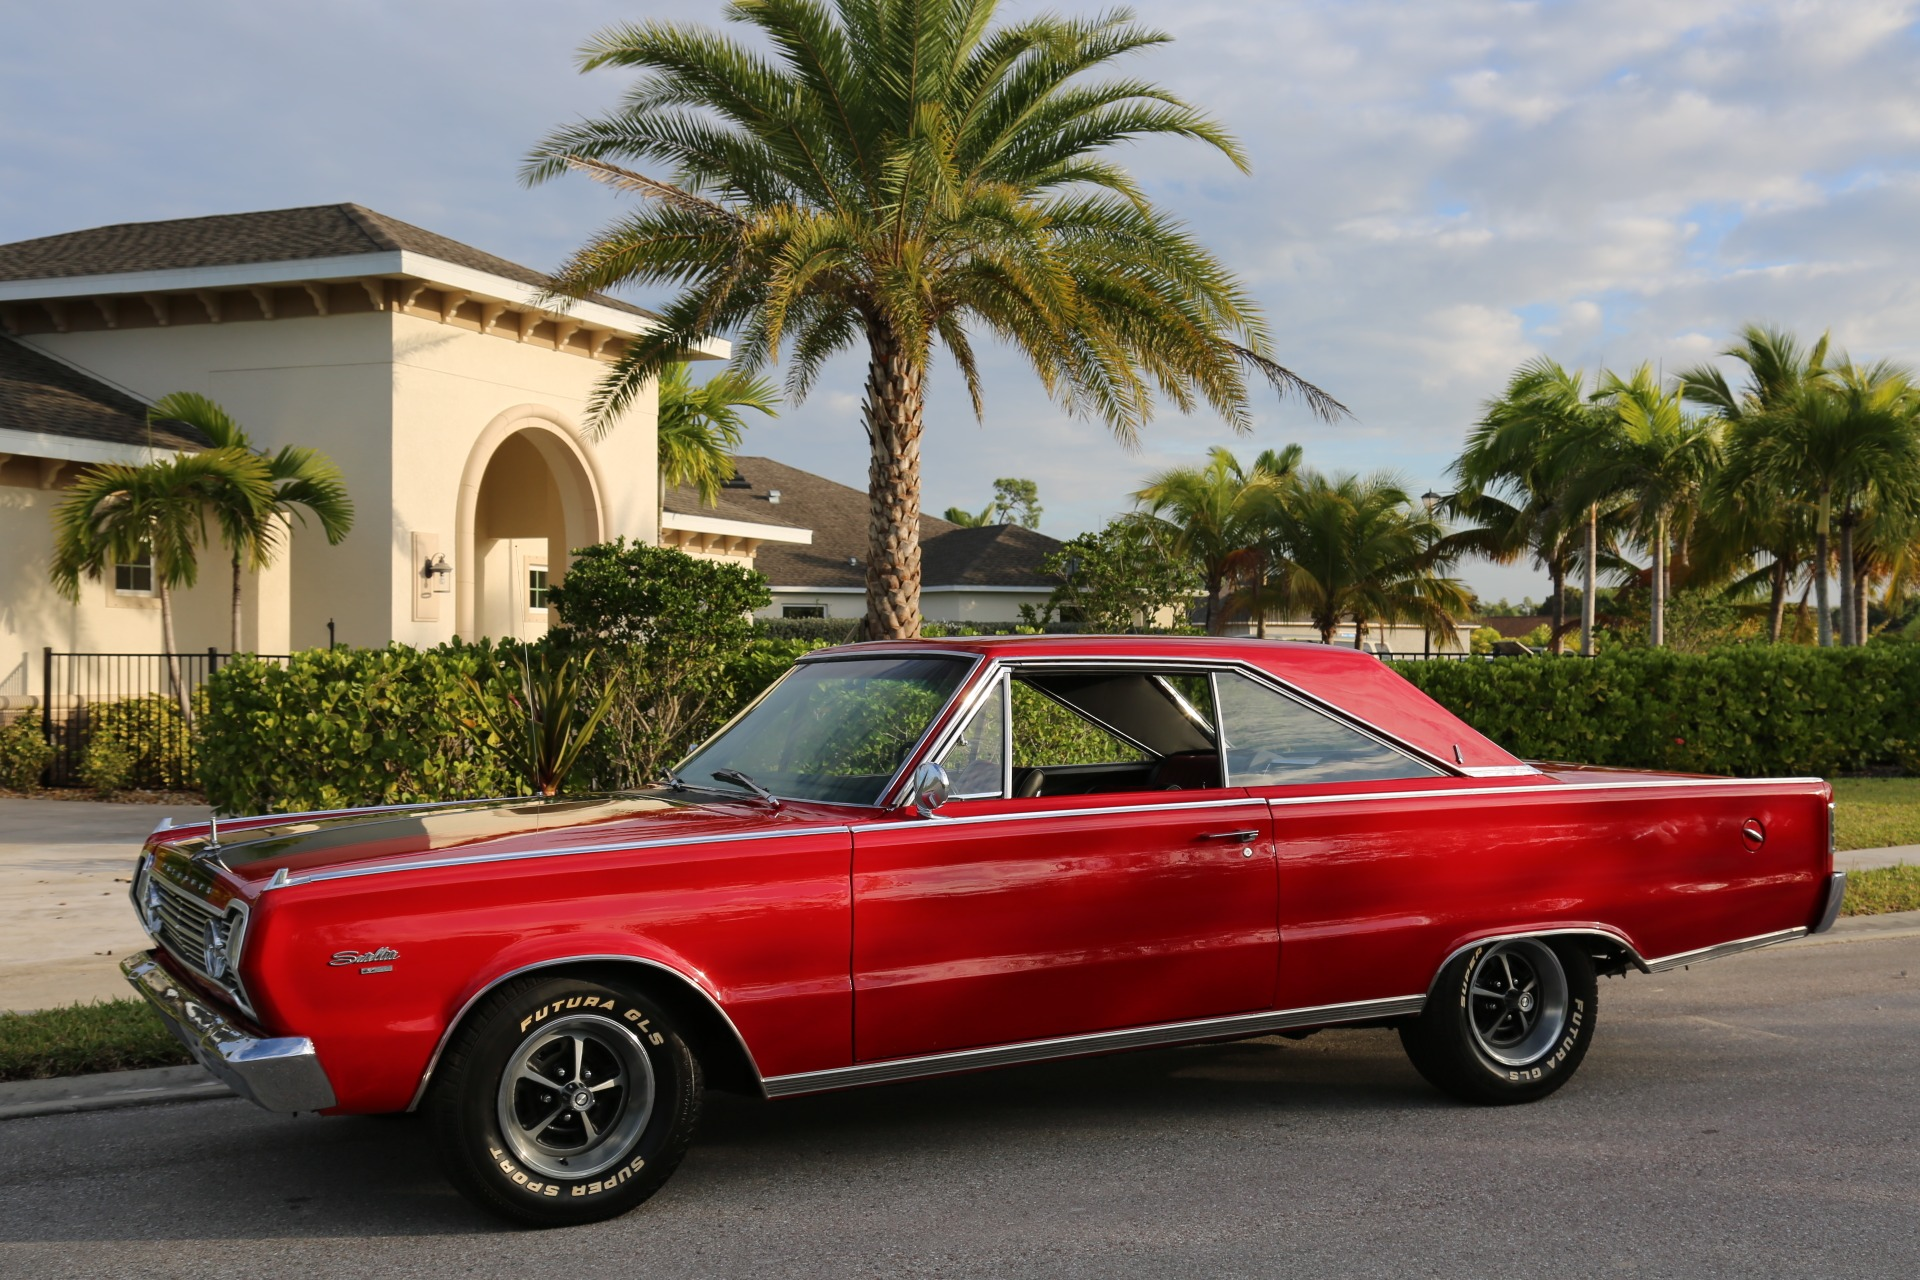 Used 1966 Plymouth Satellite 440 V8 Automatic for sale Sold at Muscle Cars for Sale Inc. in Fort Myers FL 33912 2